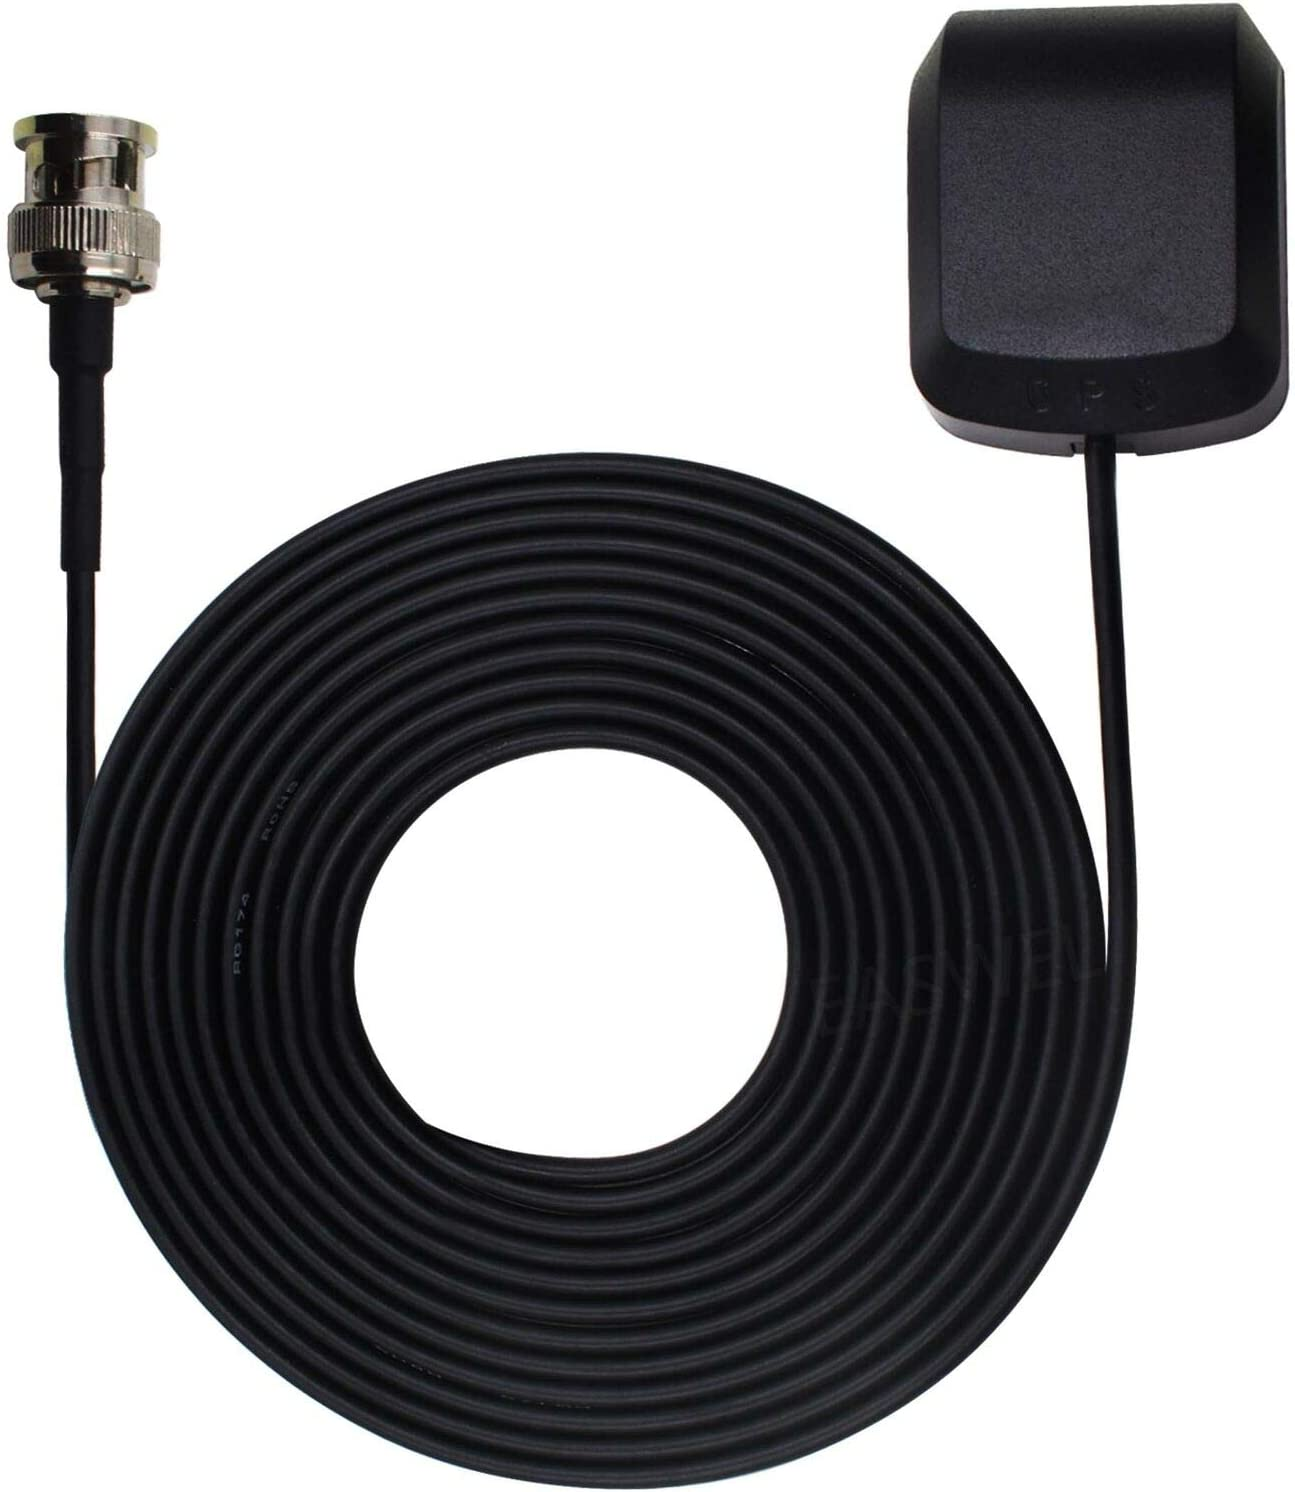 New Male GPS Bargain Ranking TOP14 Antenna BNC 65 Replacement Garmin for 50